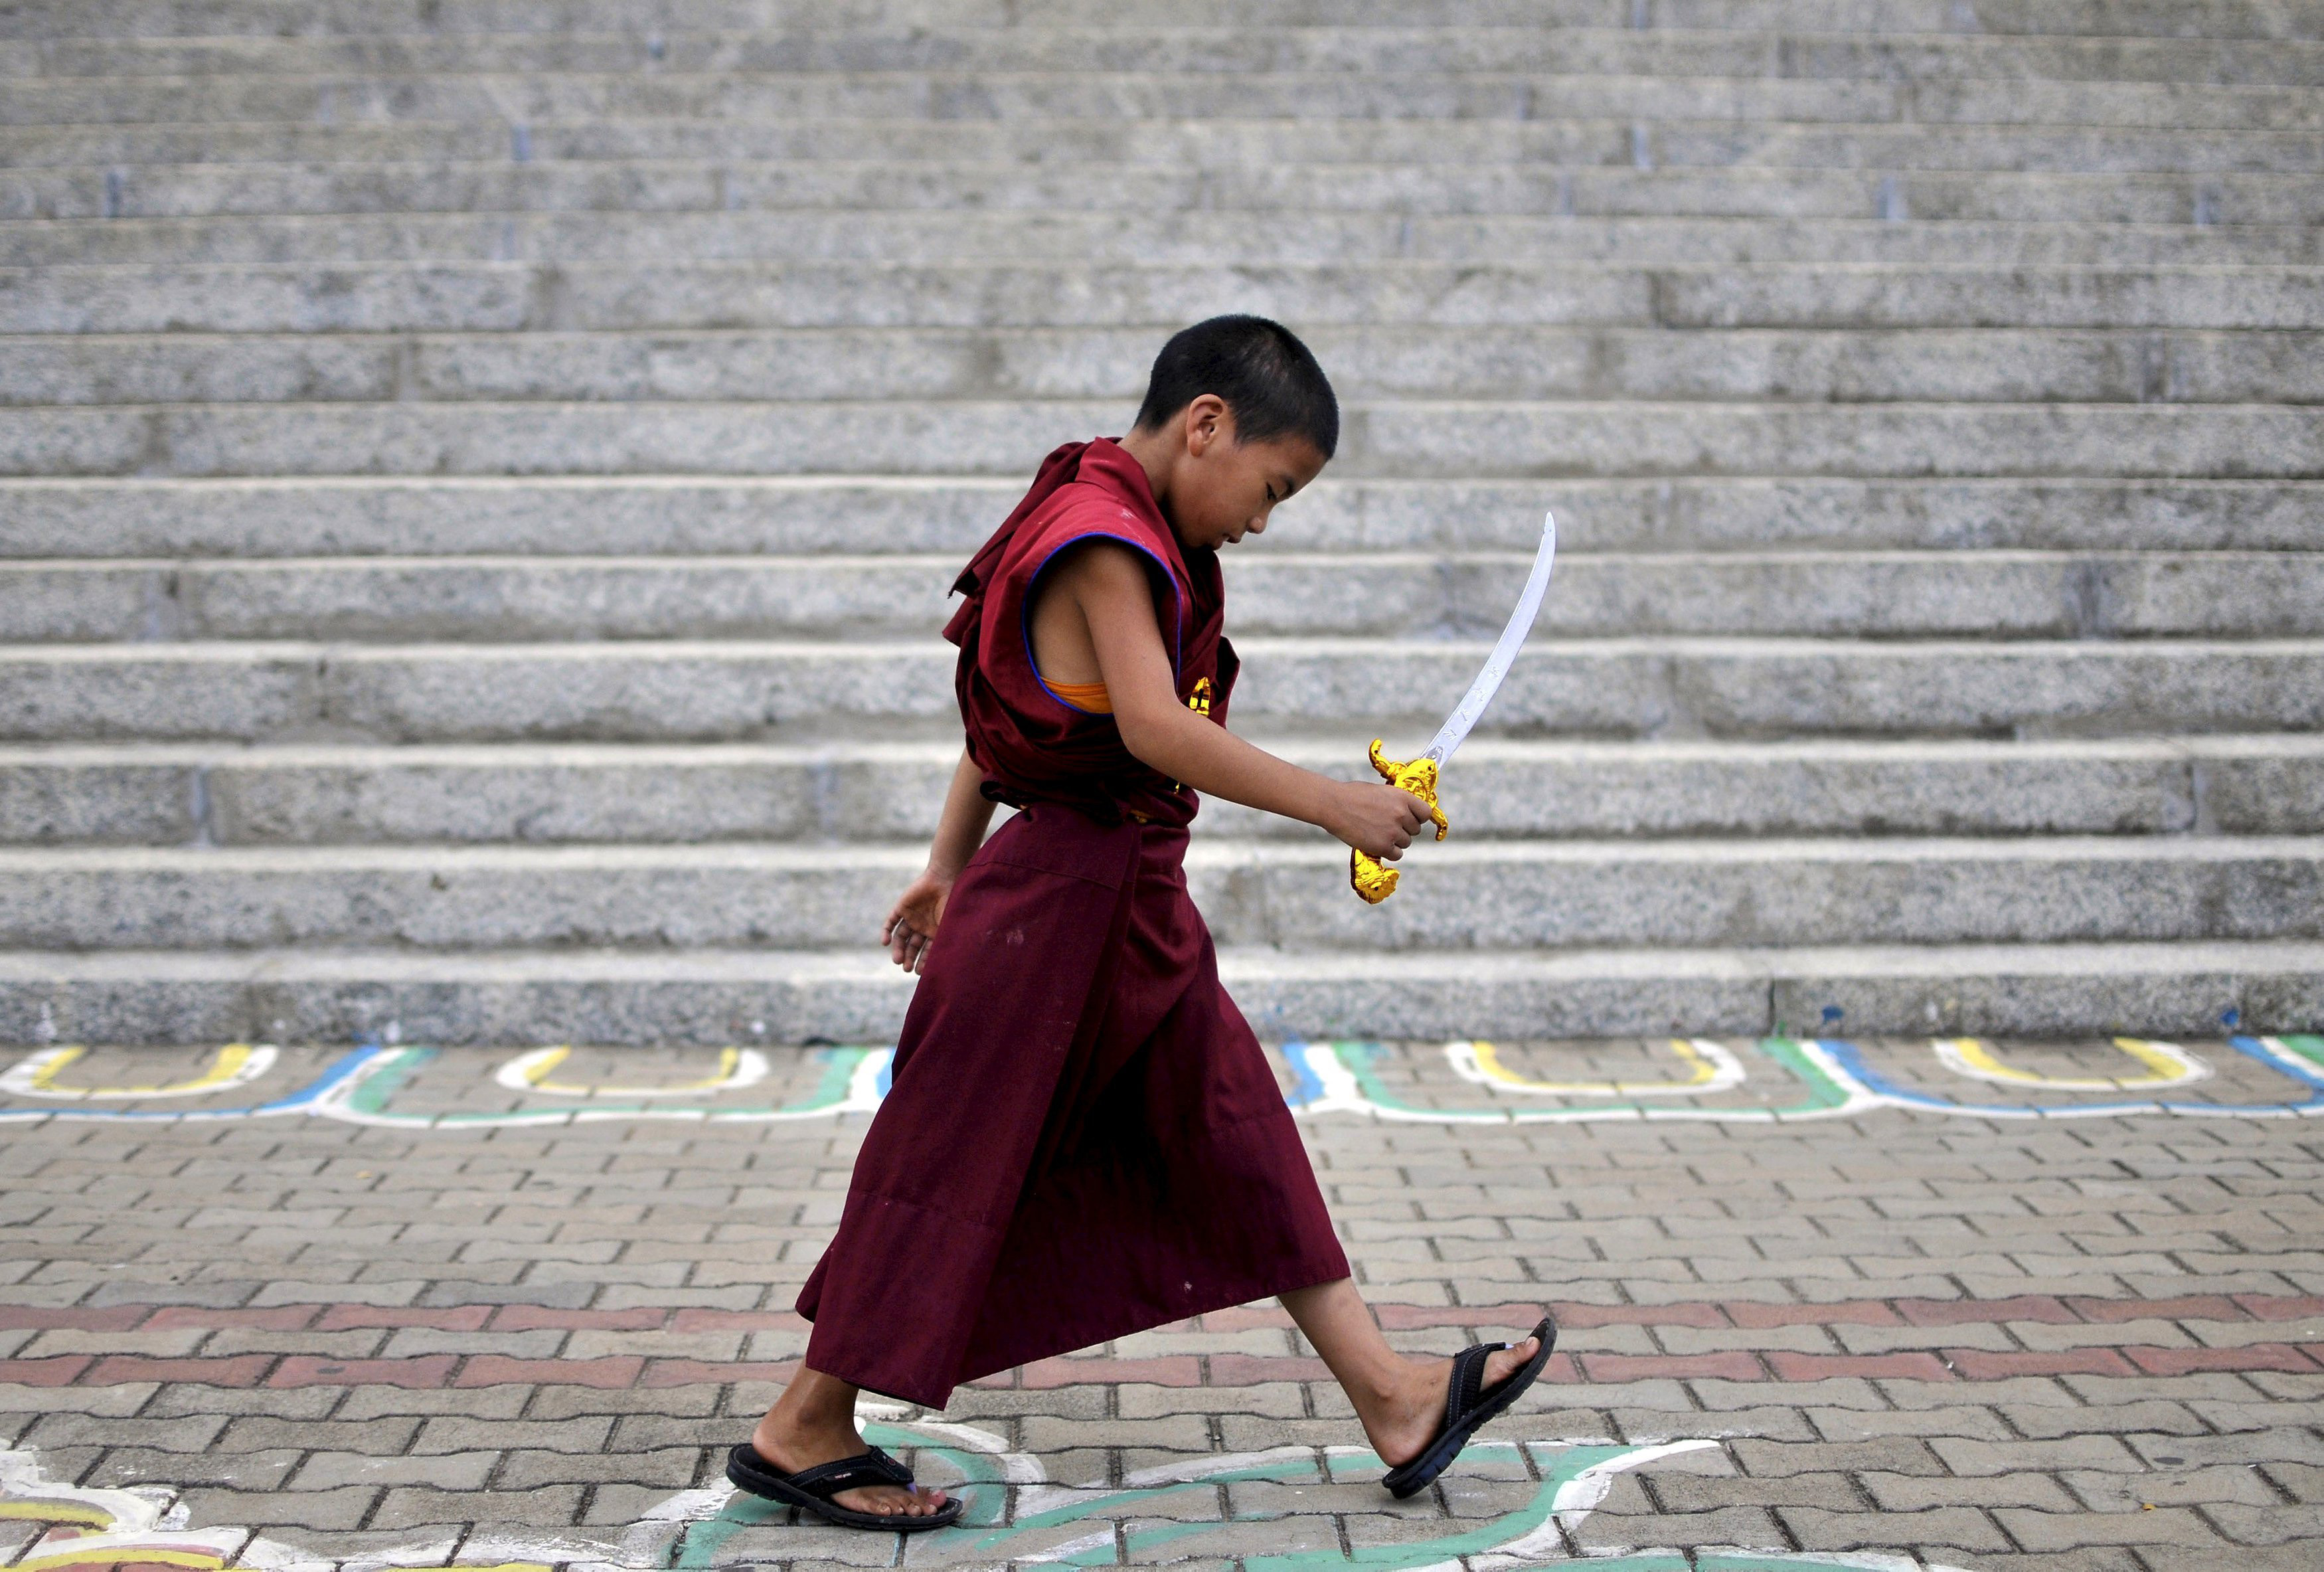 A novice Tibetan monk walks while holding a toy sword as he attends the 80th birthday of the Dalai Lama, at the Sera Jey Monastery in Bylakuppe in the southern state of Karnataka, India on July 6, 2015.